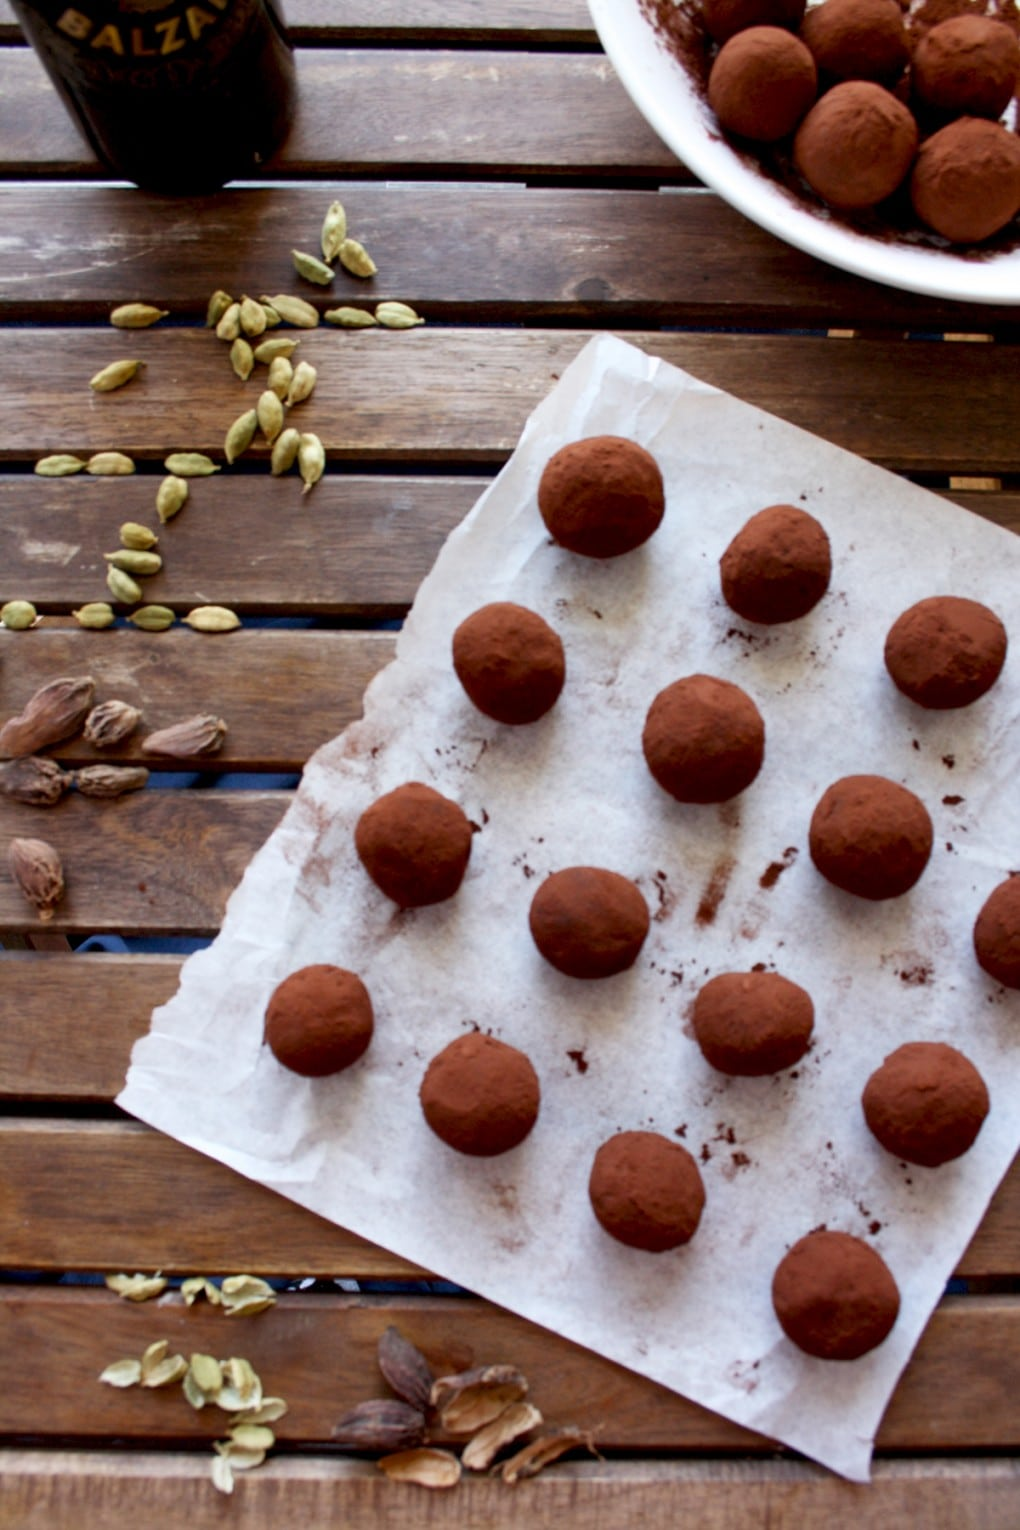 Three Chocolate Truffles Recipes - First Recipe Before Being Packed and Turned into a Perfect Present